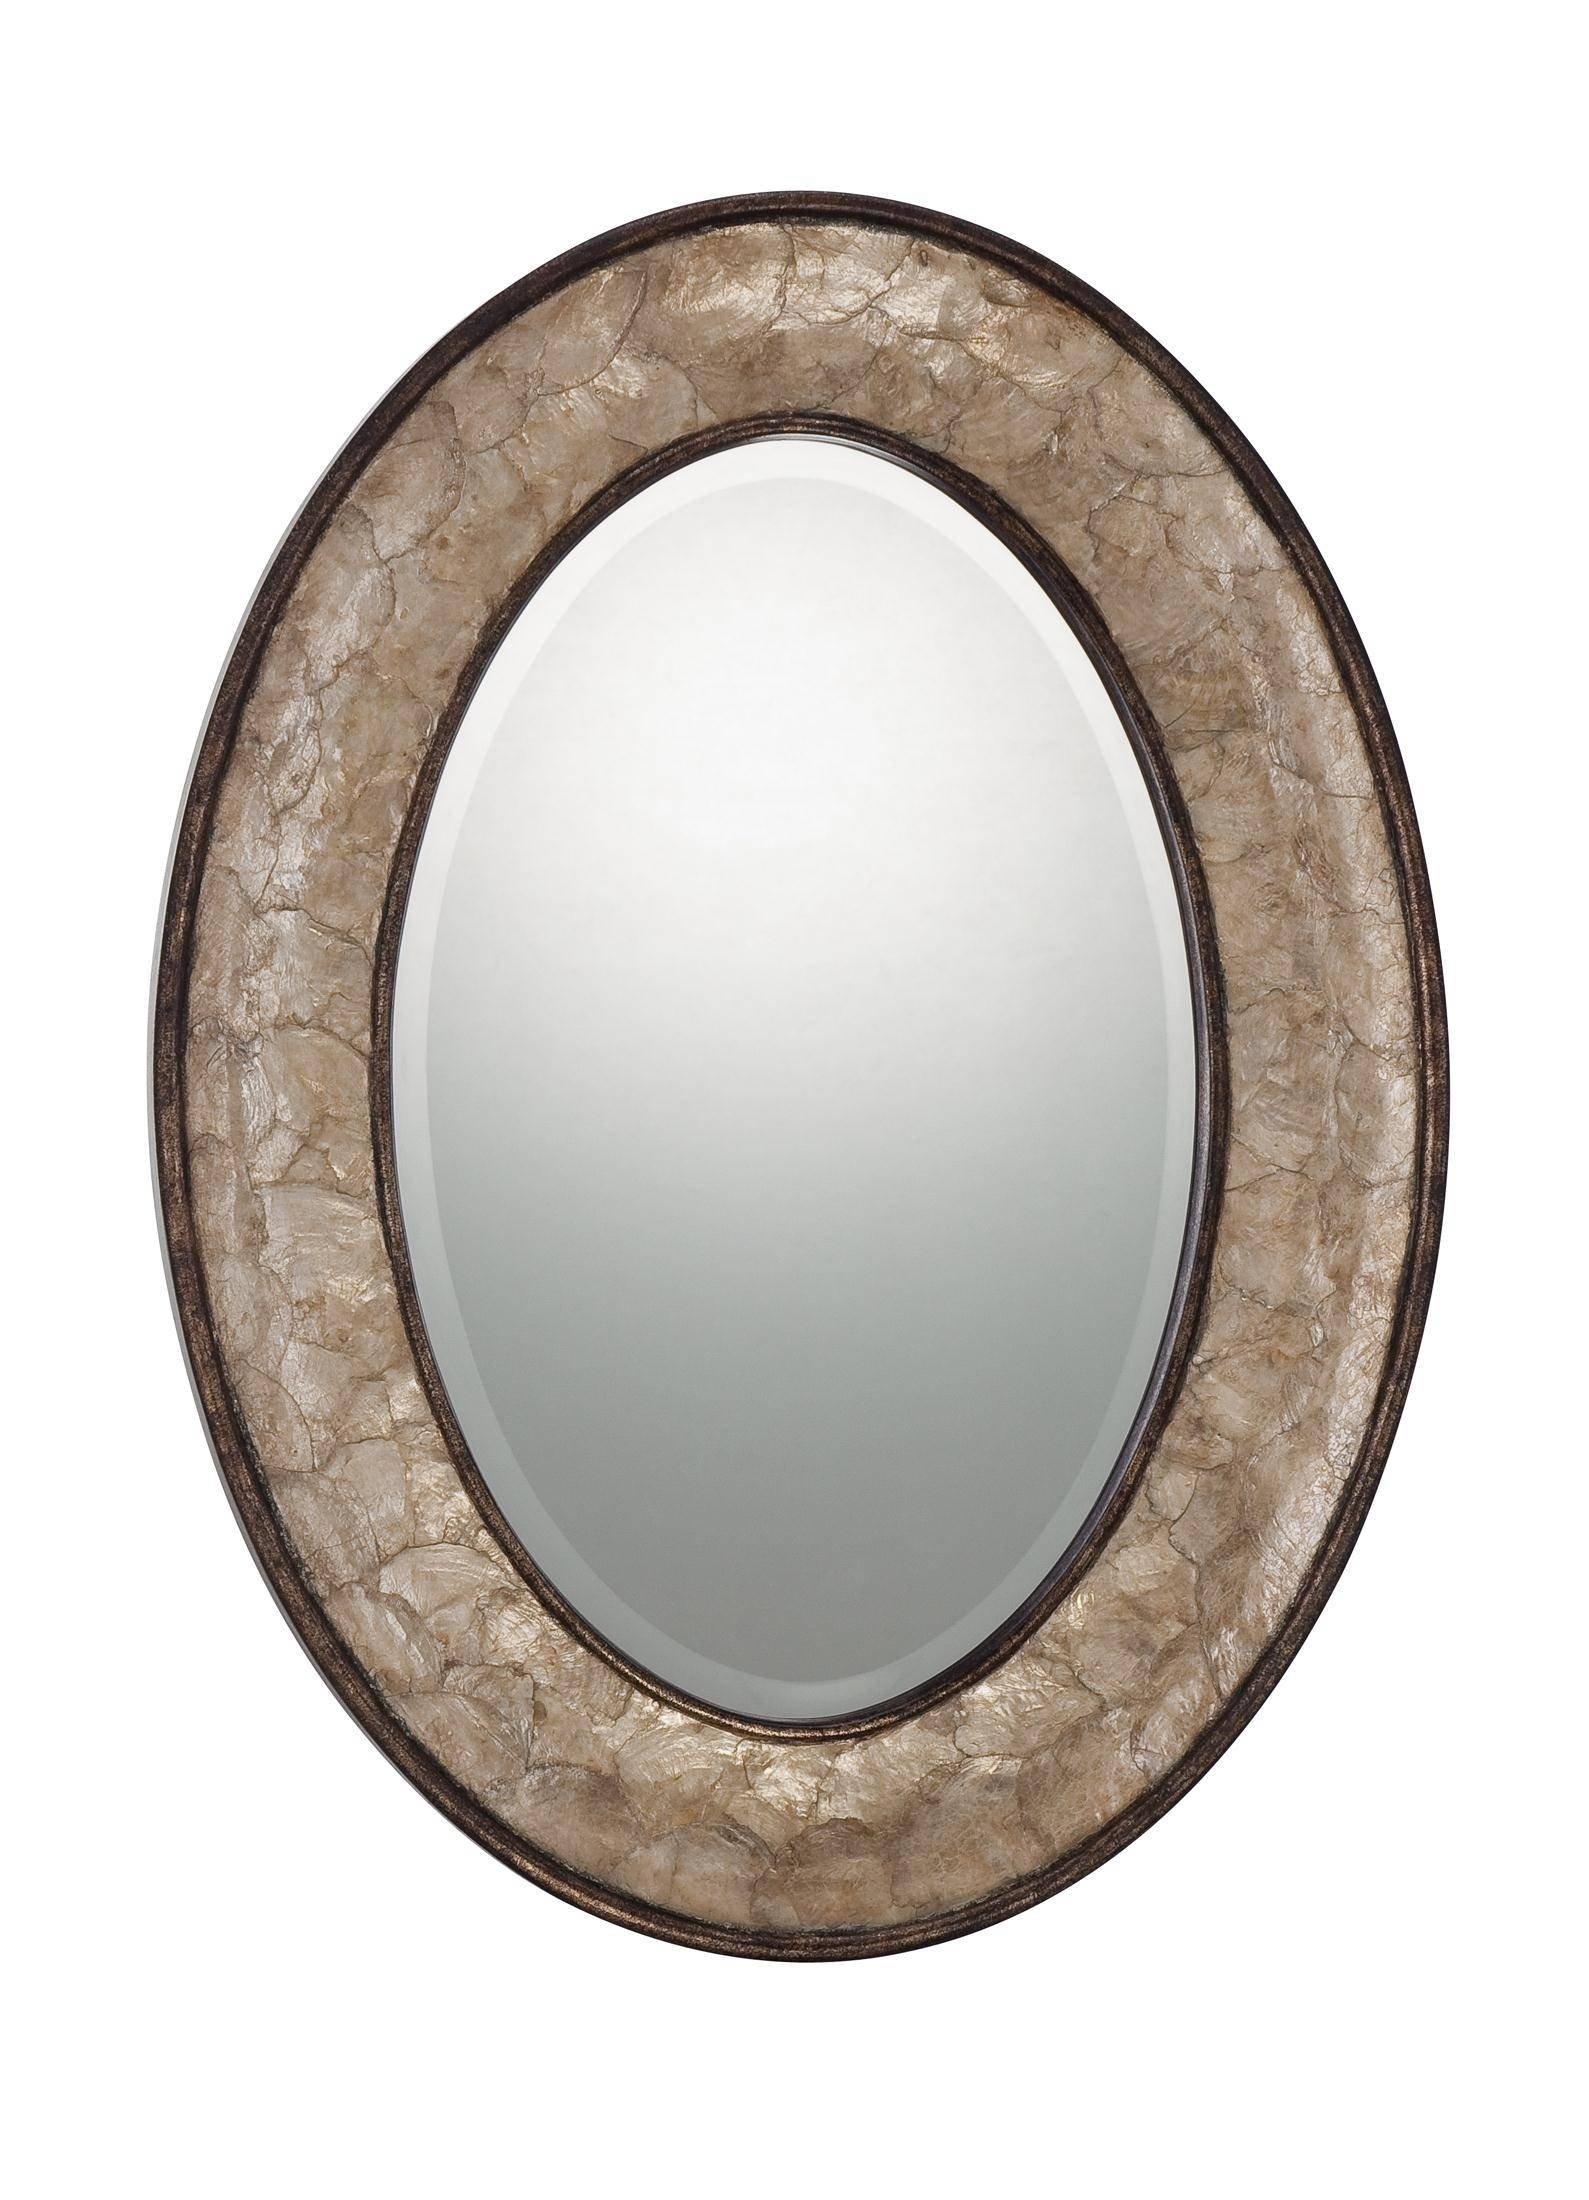 Oval Bathroom Mirrors Beautiful | Home Designjohn for Oval Wall Mirrors (Image 18 of 25)